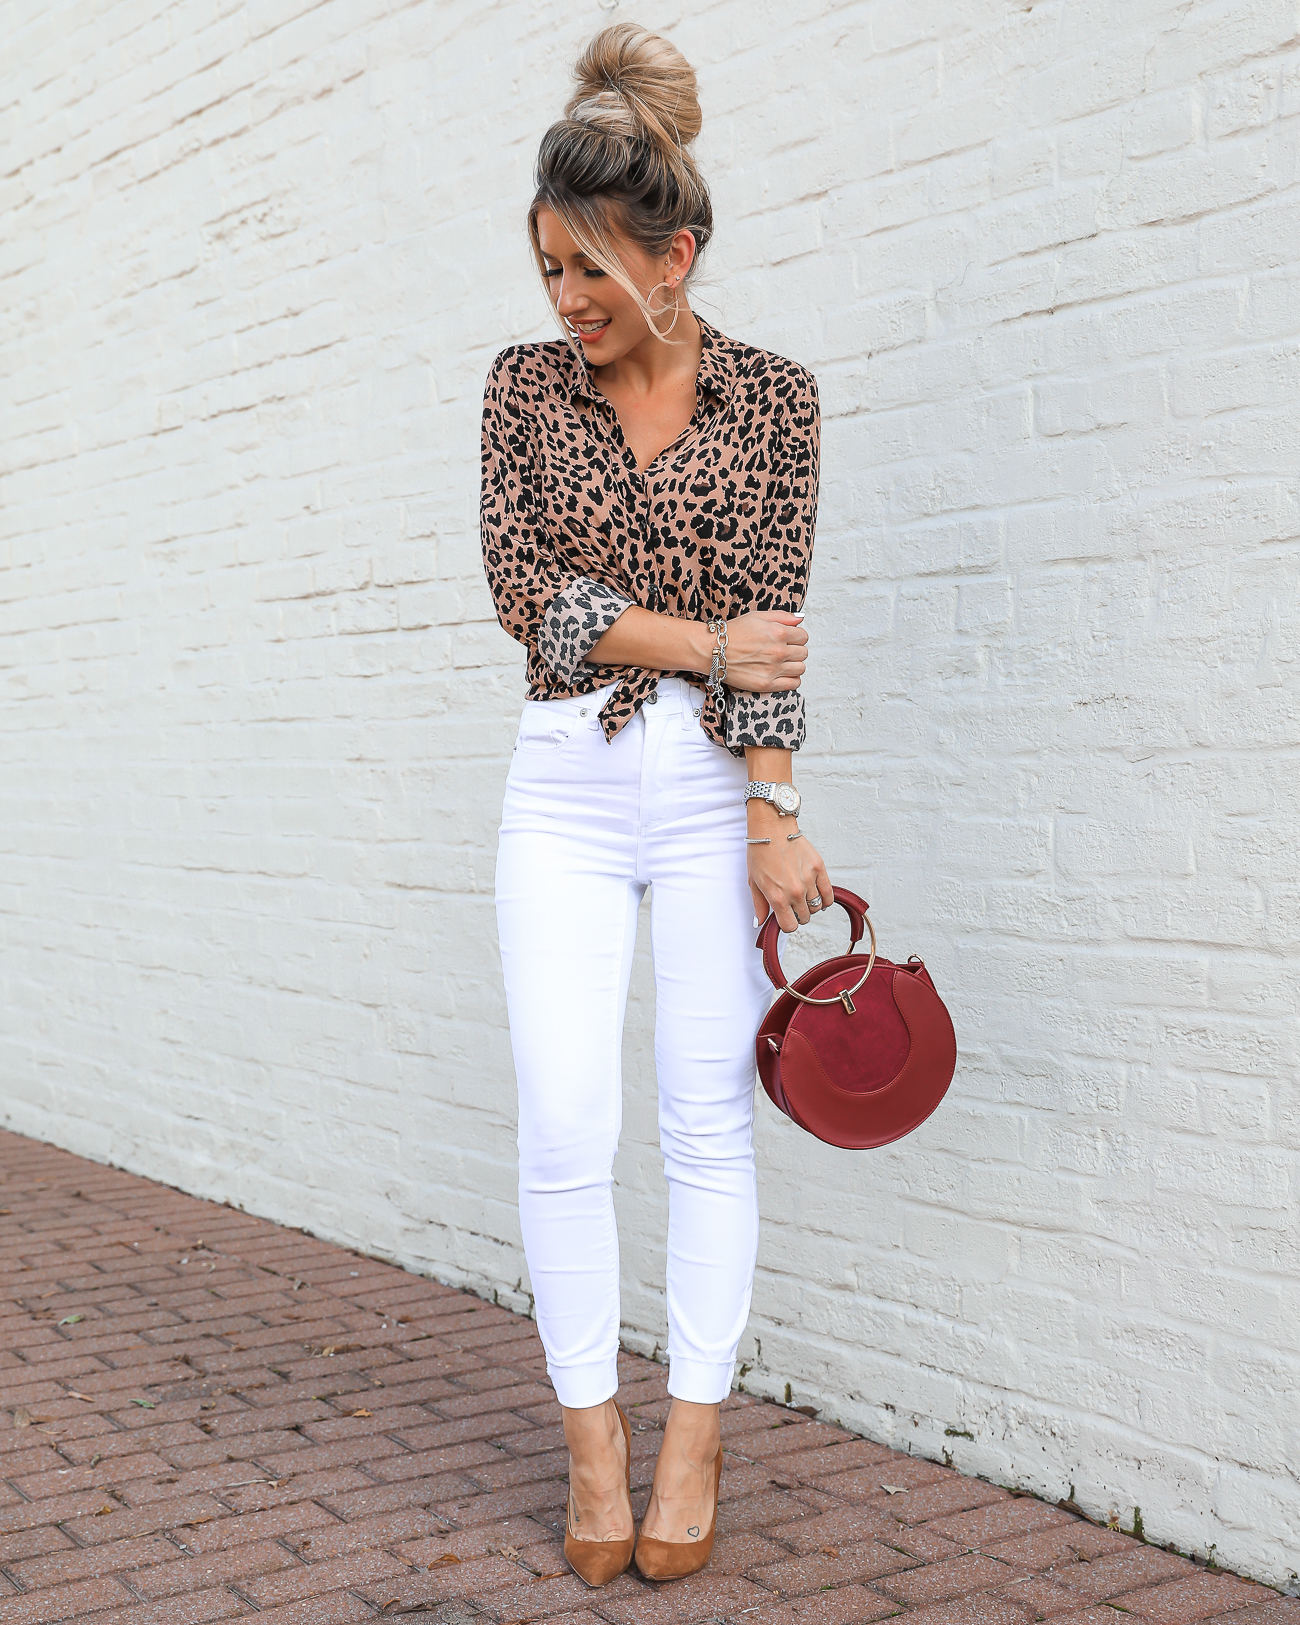 Dynamite Leopard Top & white jeans Fall Outfit Idea -3